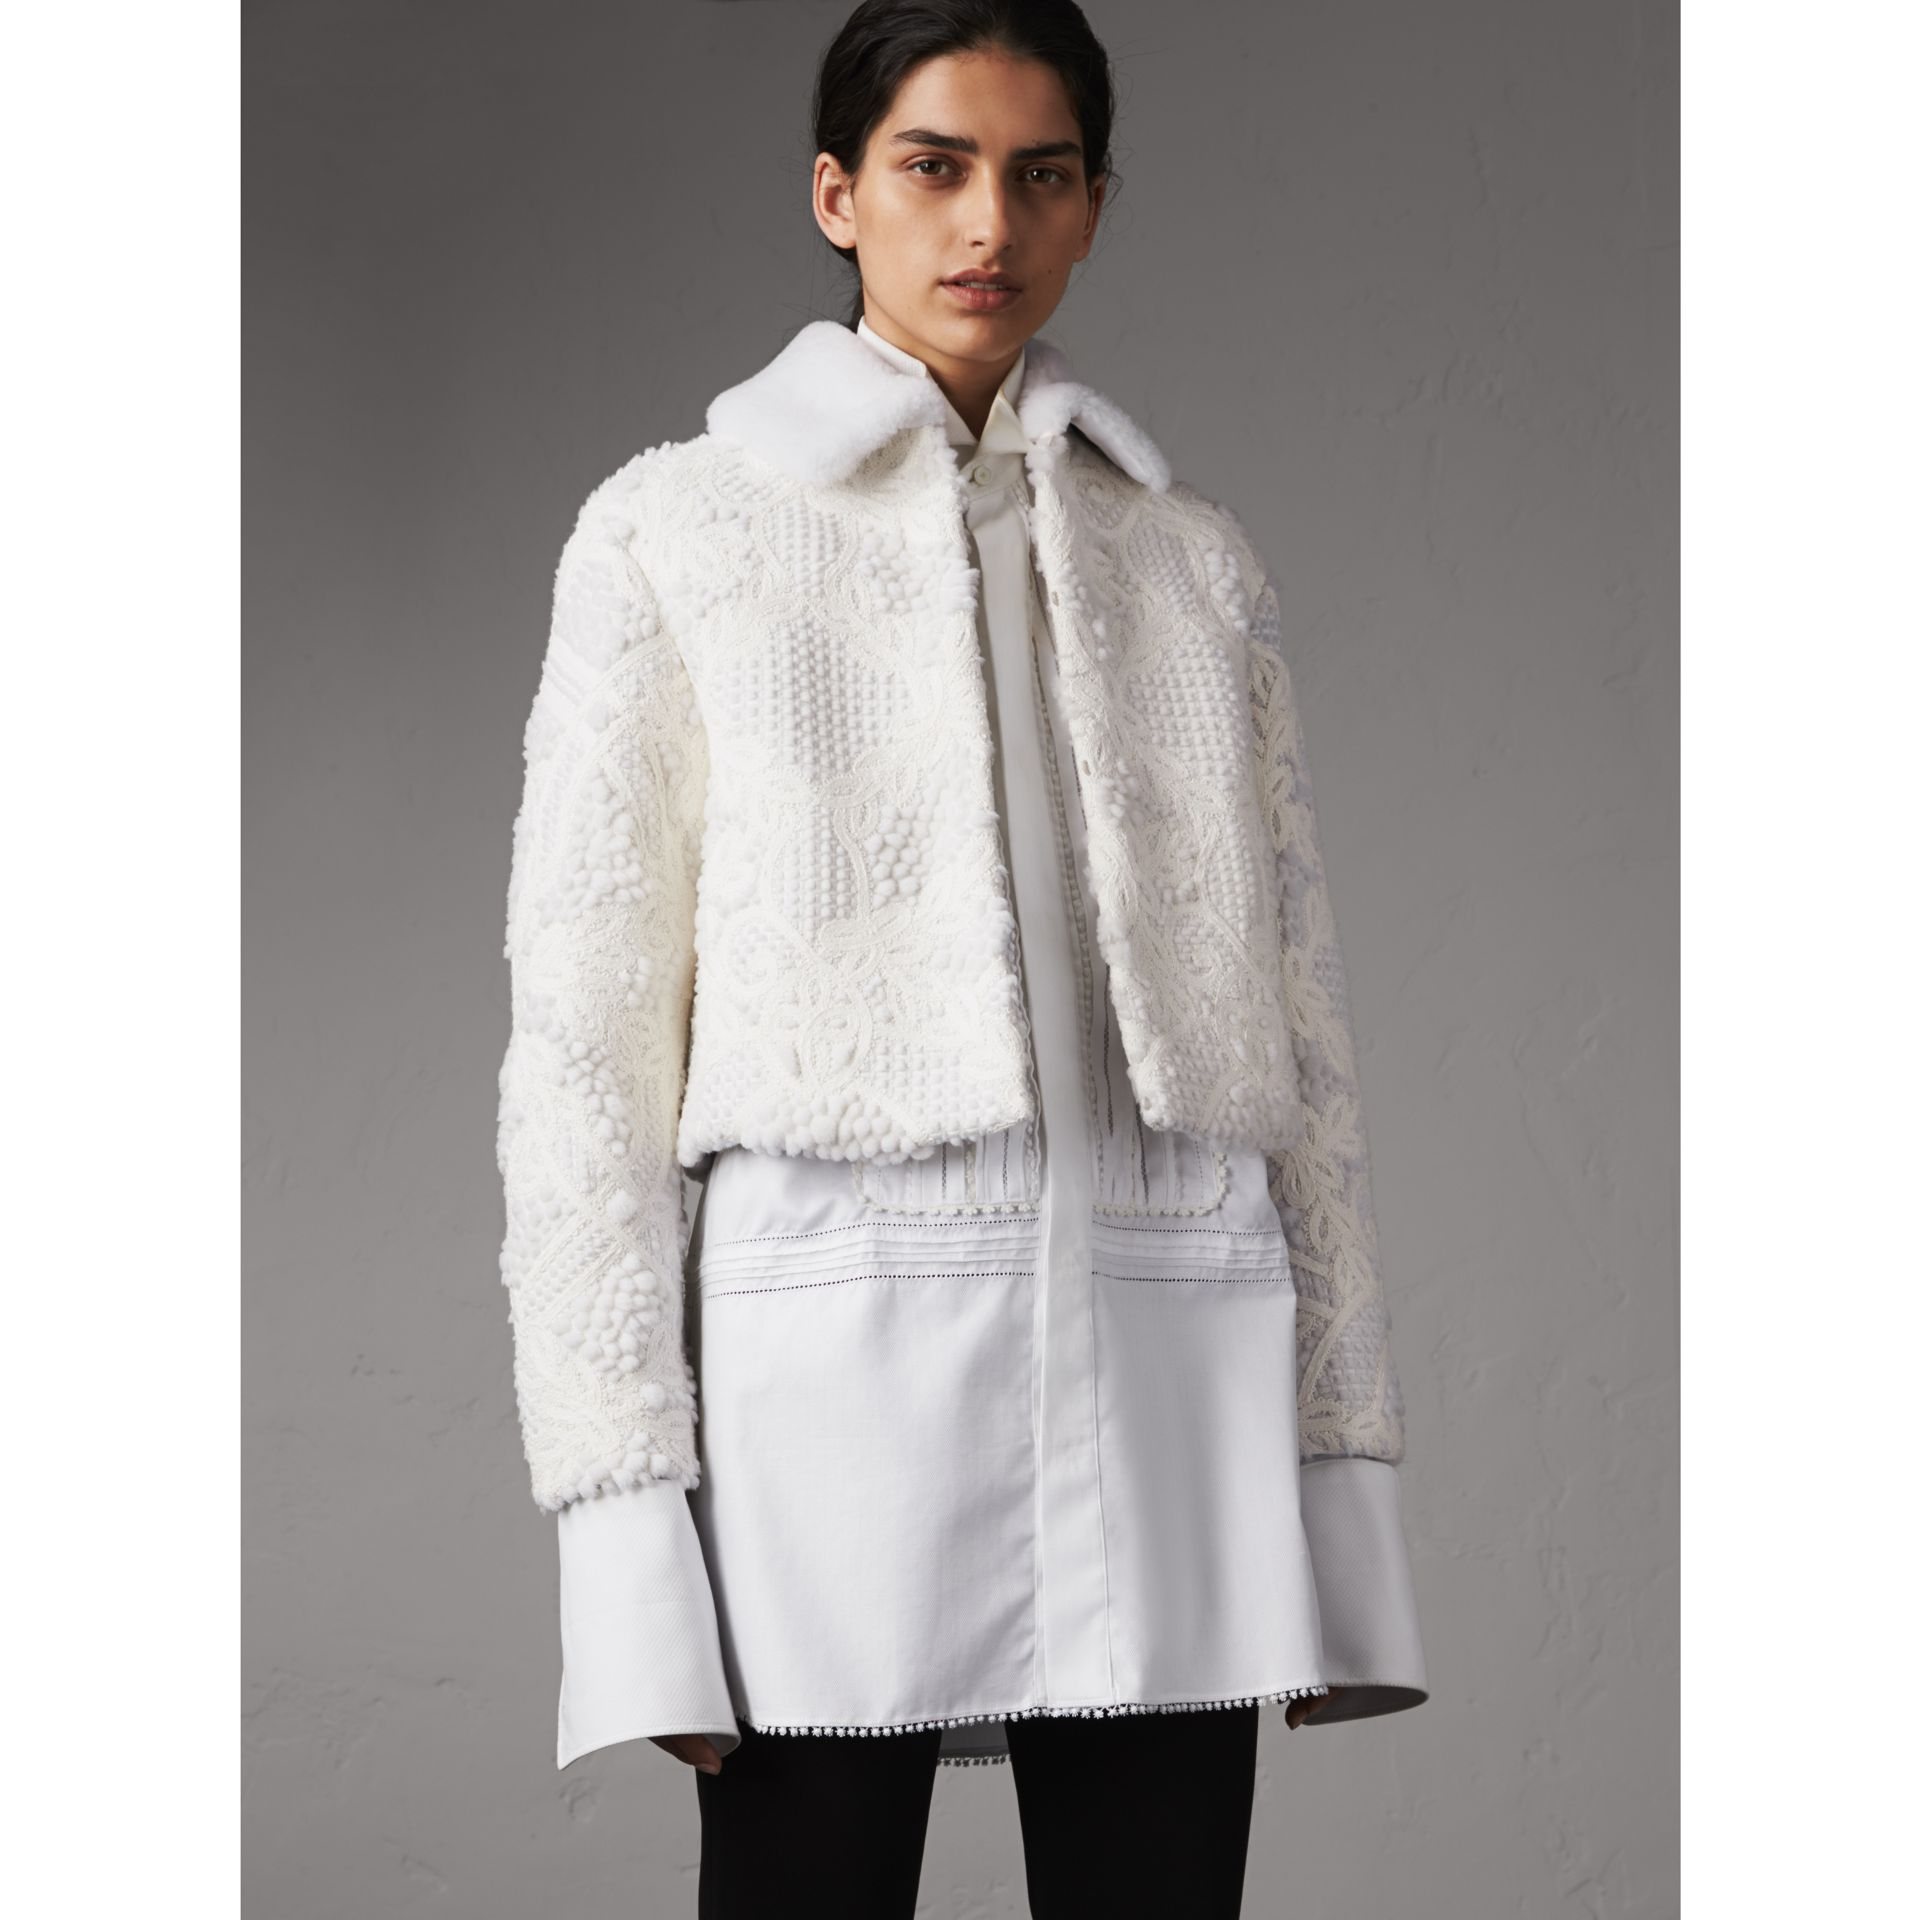 Macramé Lace-embellished Shearling Jacket in White - Women | Burberry Australia - gallery image 1